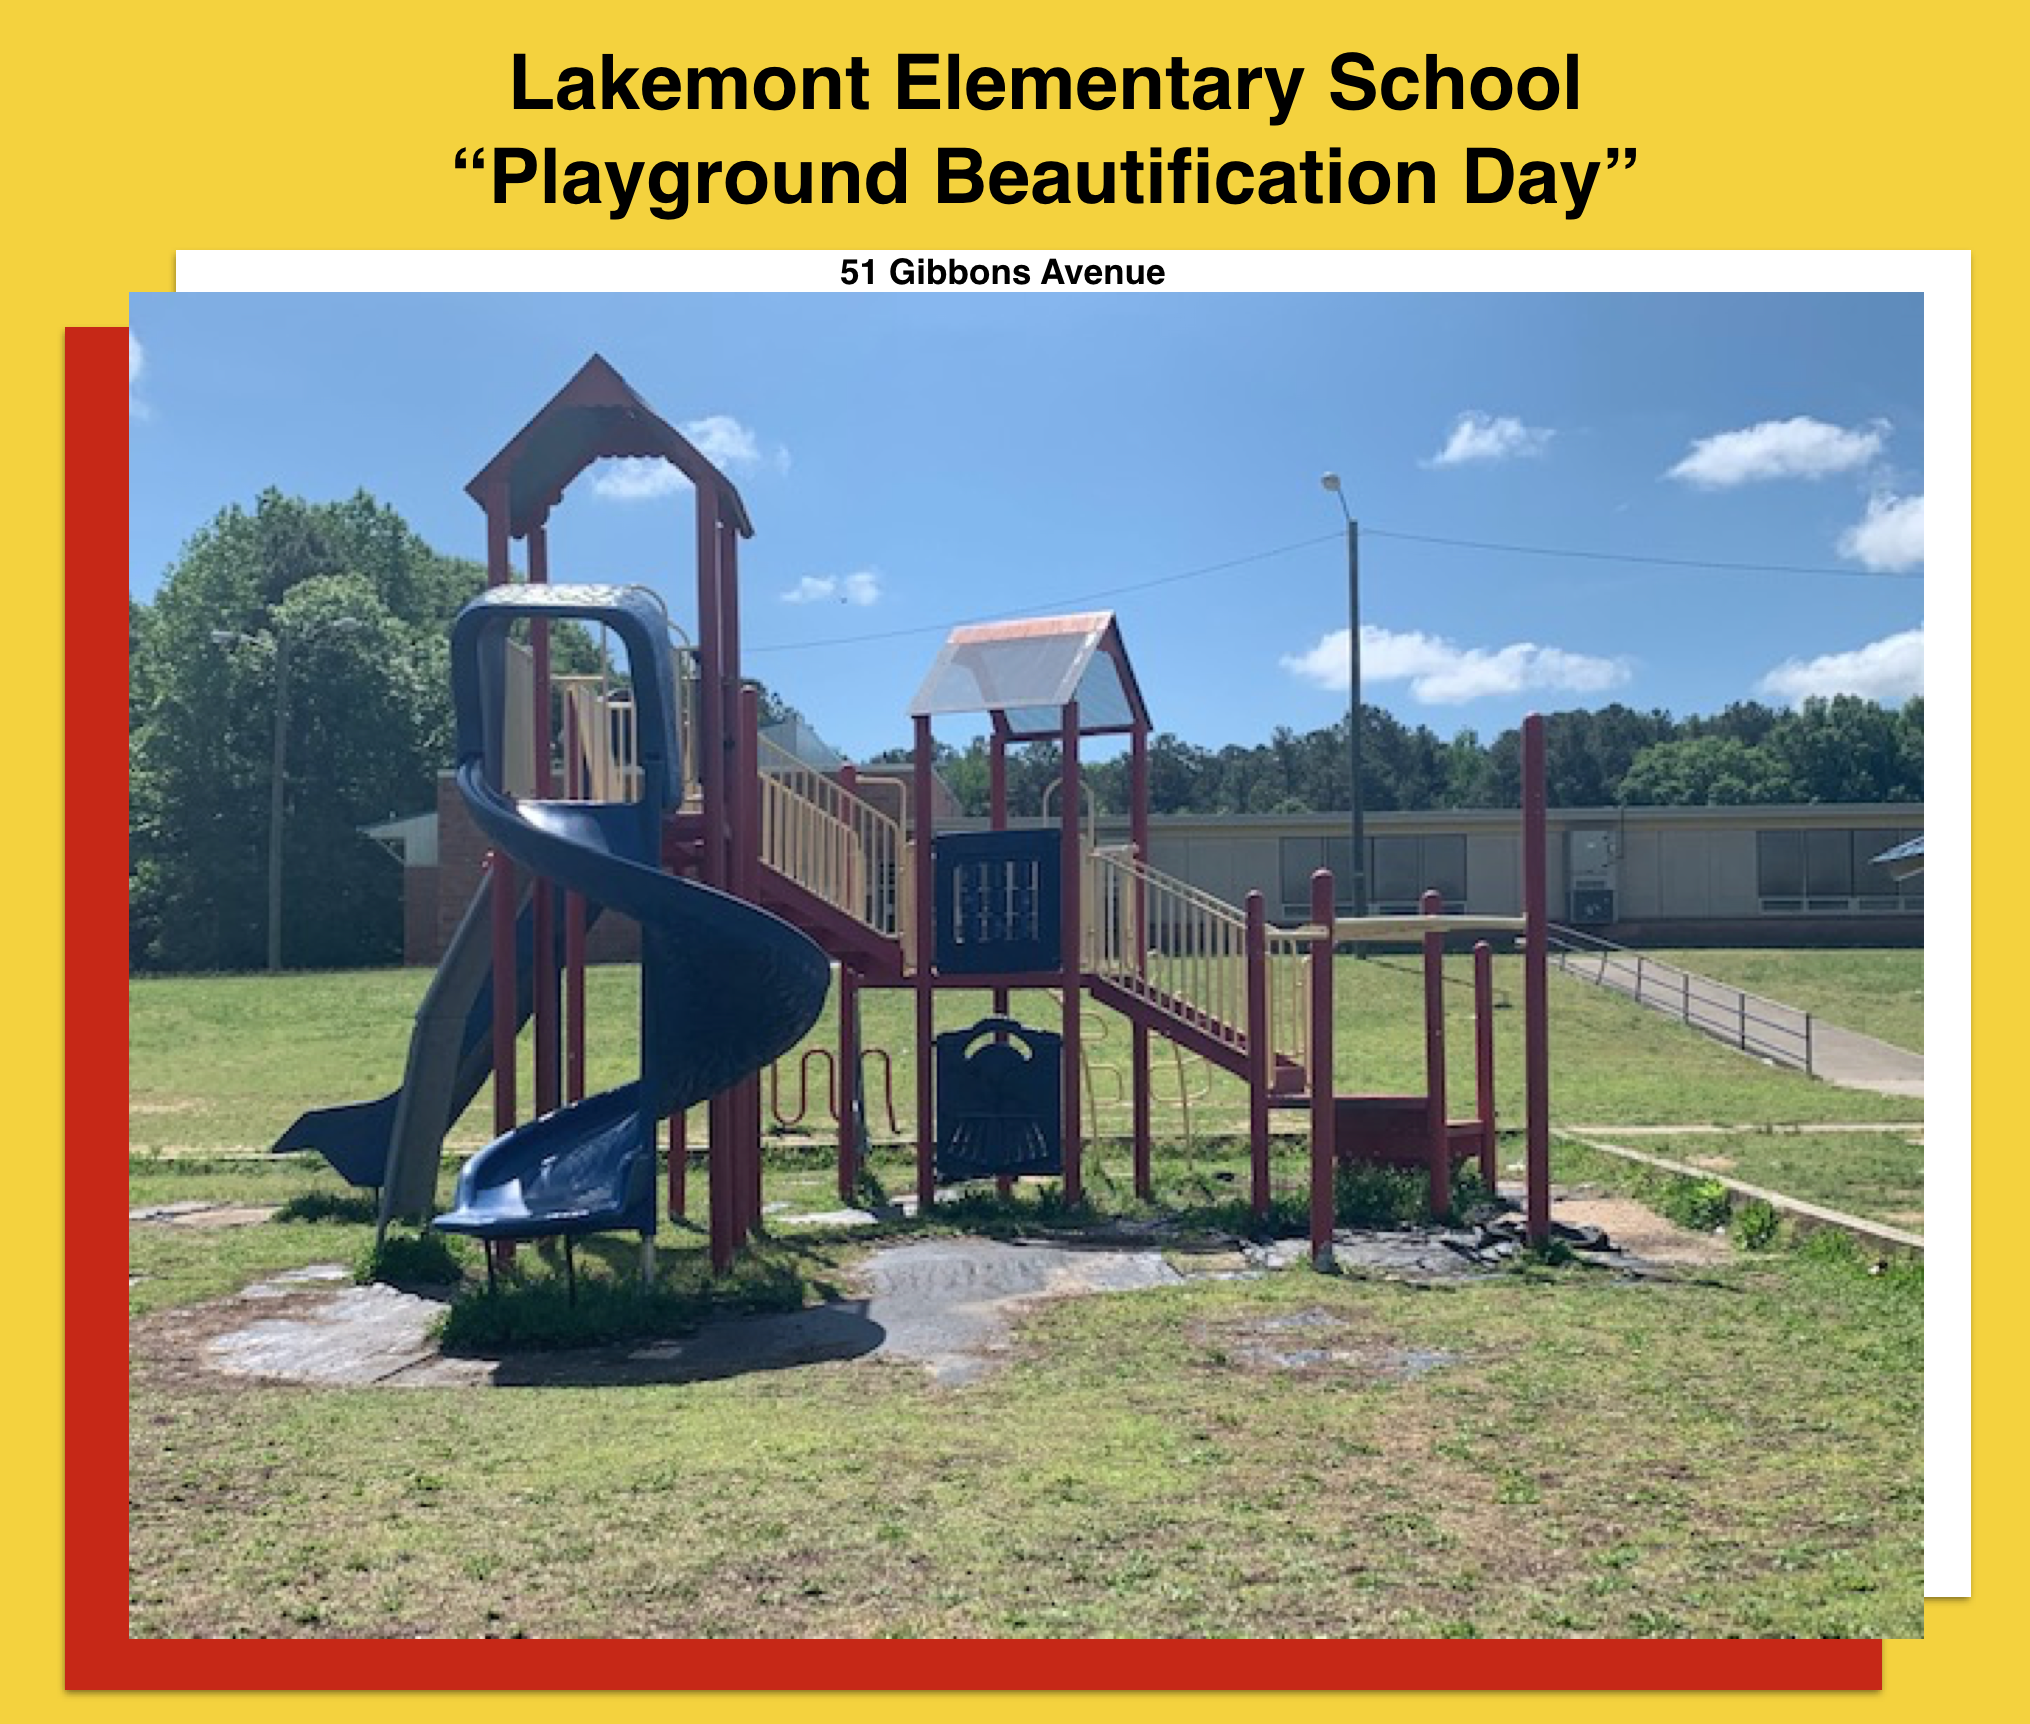 LAKEMONT ELEMENTARY SCHOOL - PLAYGROUND BEAUTIFICATION DAY